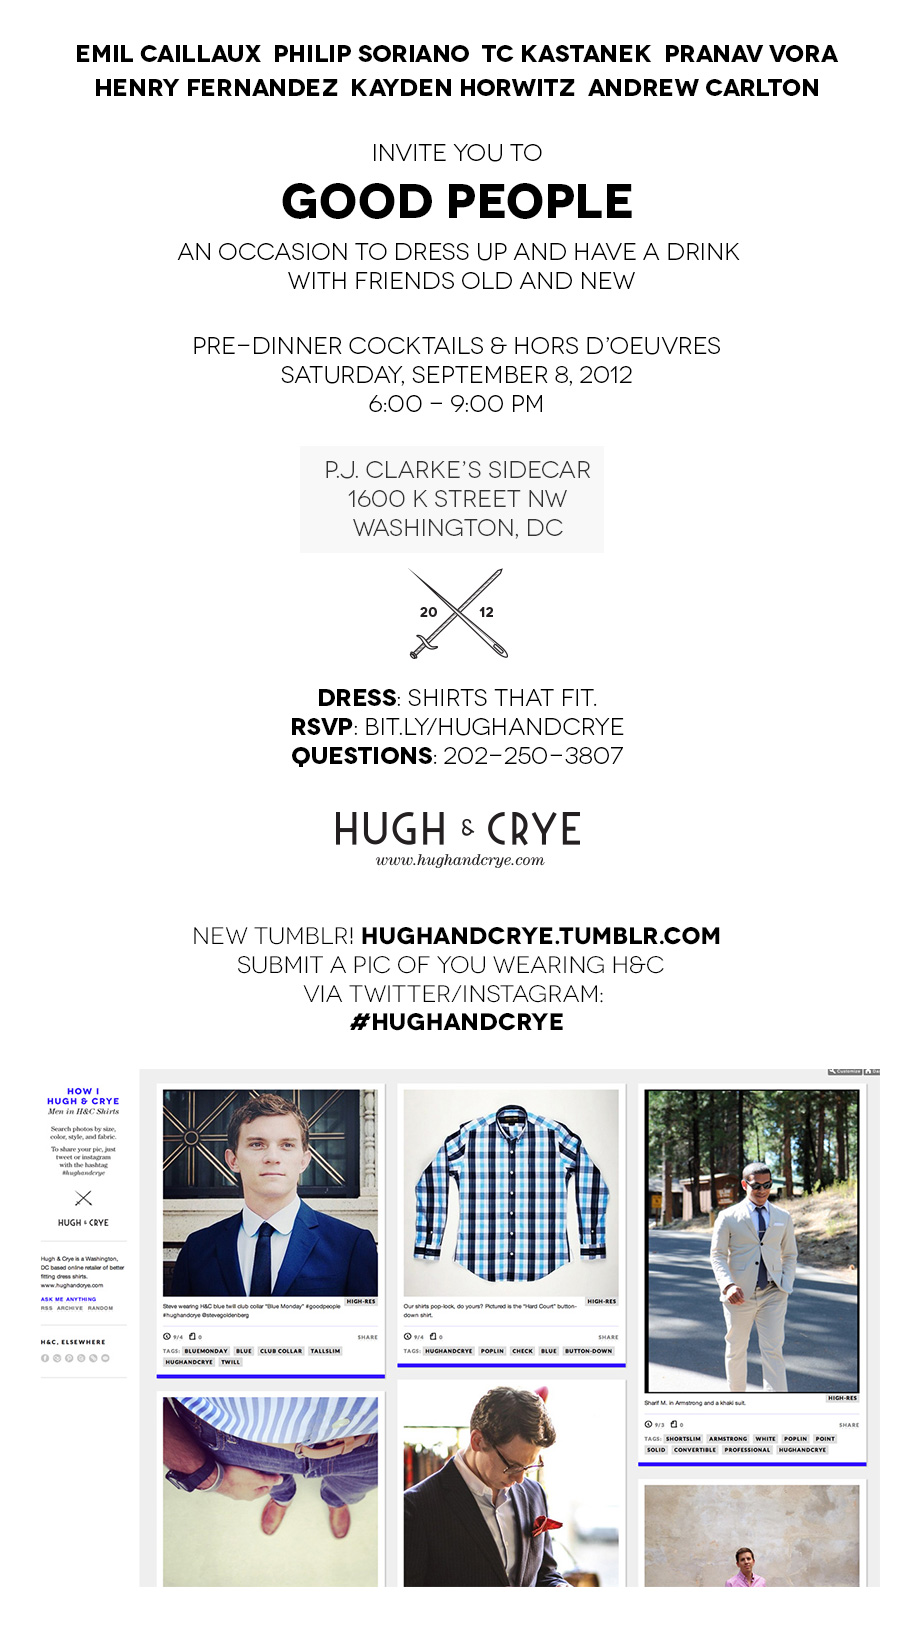 Good People - event by Hugh & Crye